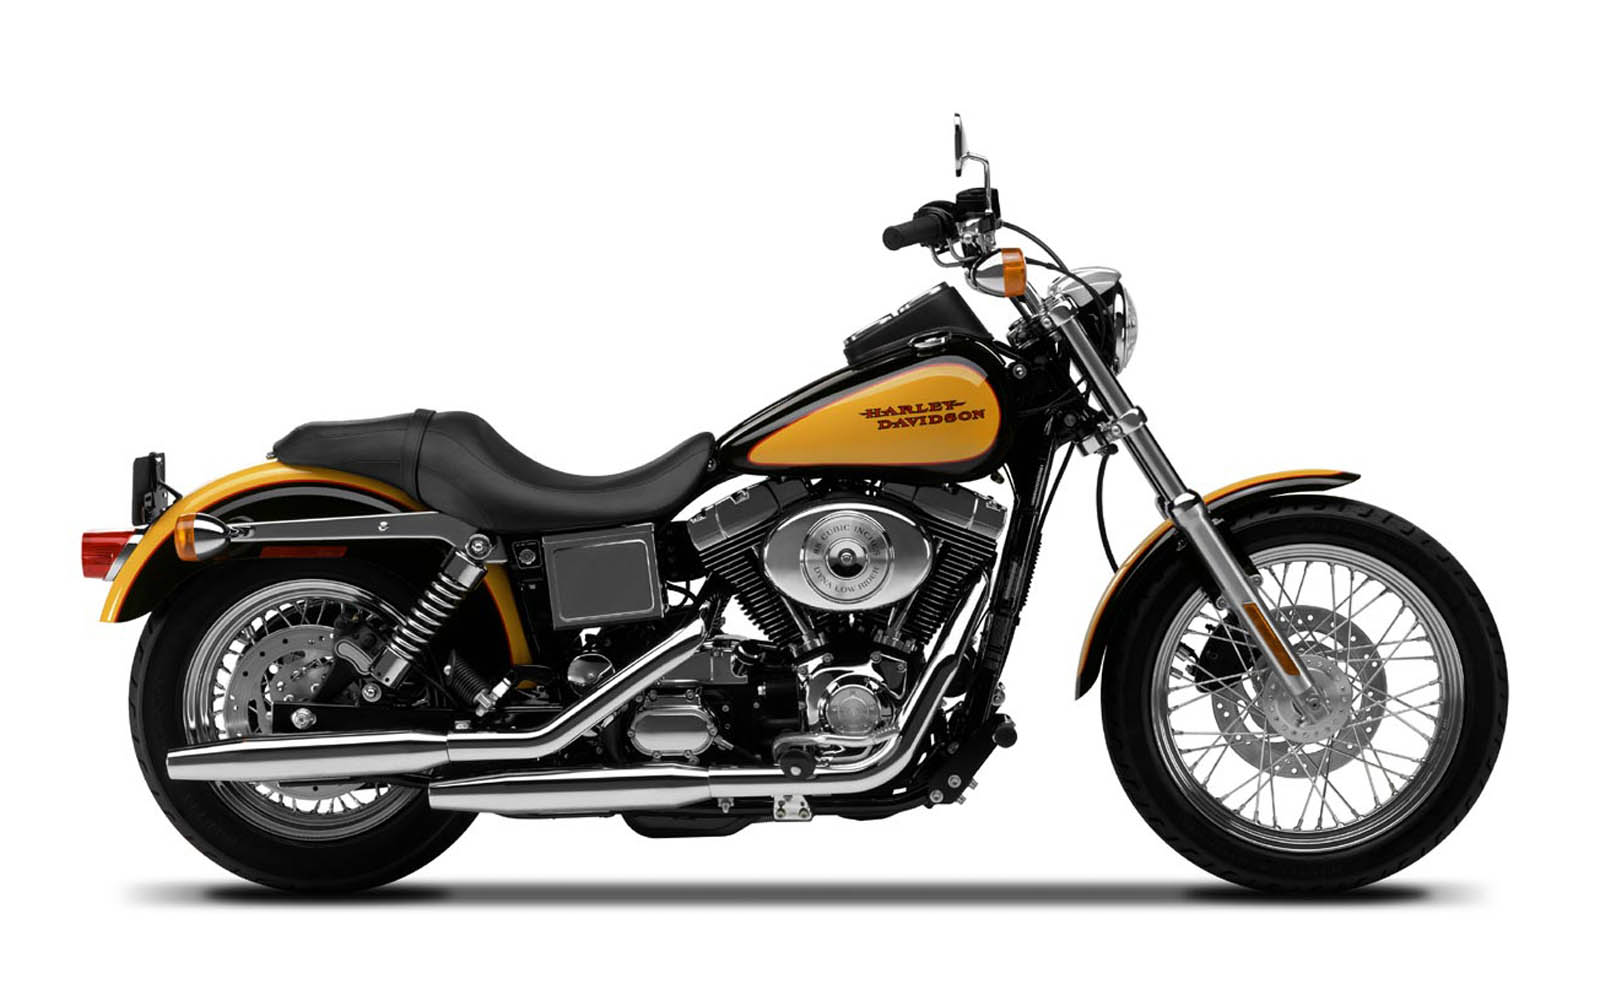 wallpaper: Harley Davidson Bikes Wallpapers